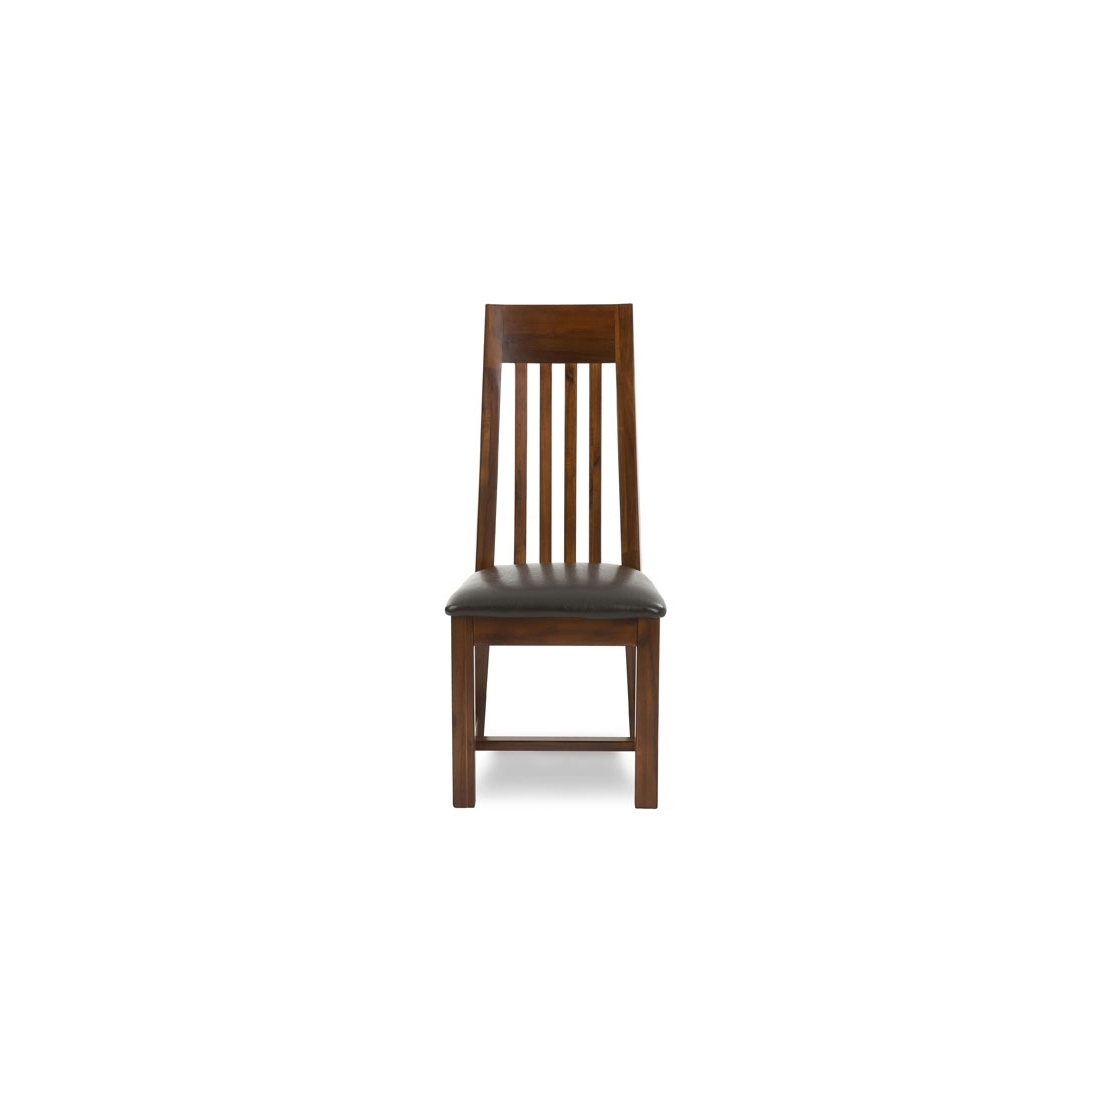 Well Liked Stylish Dining Chairs Intended For Stylish Dining Chairs – Gunjan Furnitures Jaipur (View 24 of 25)